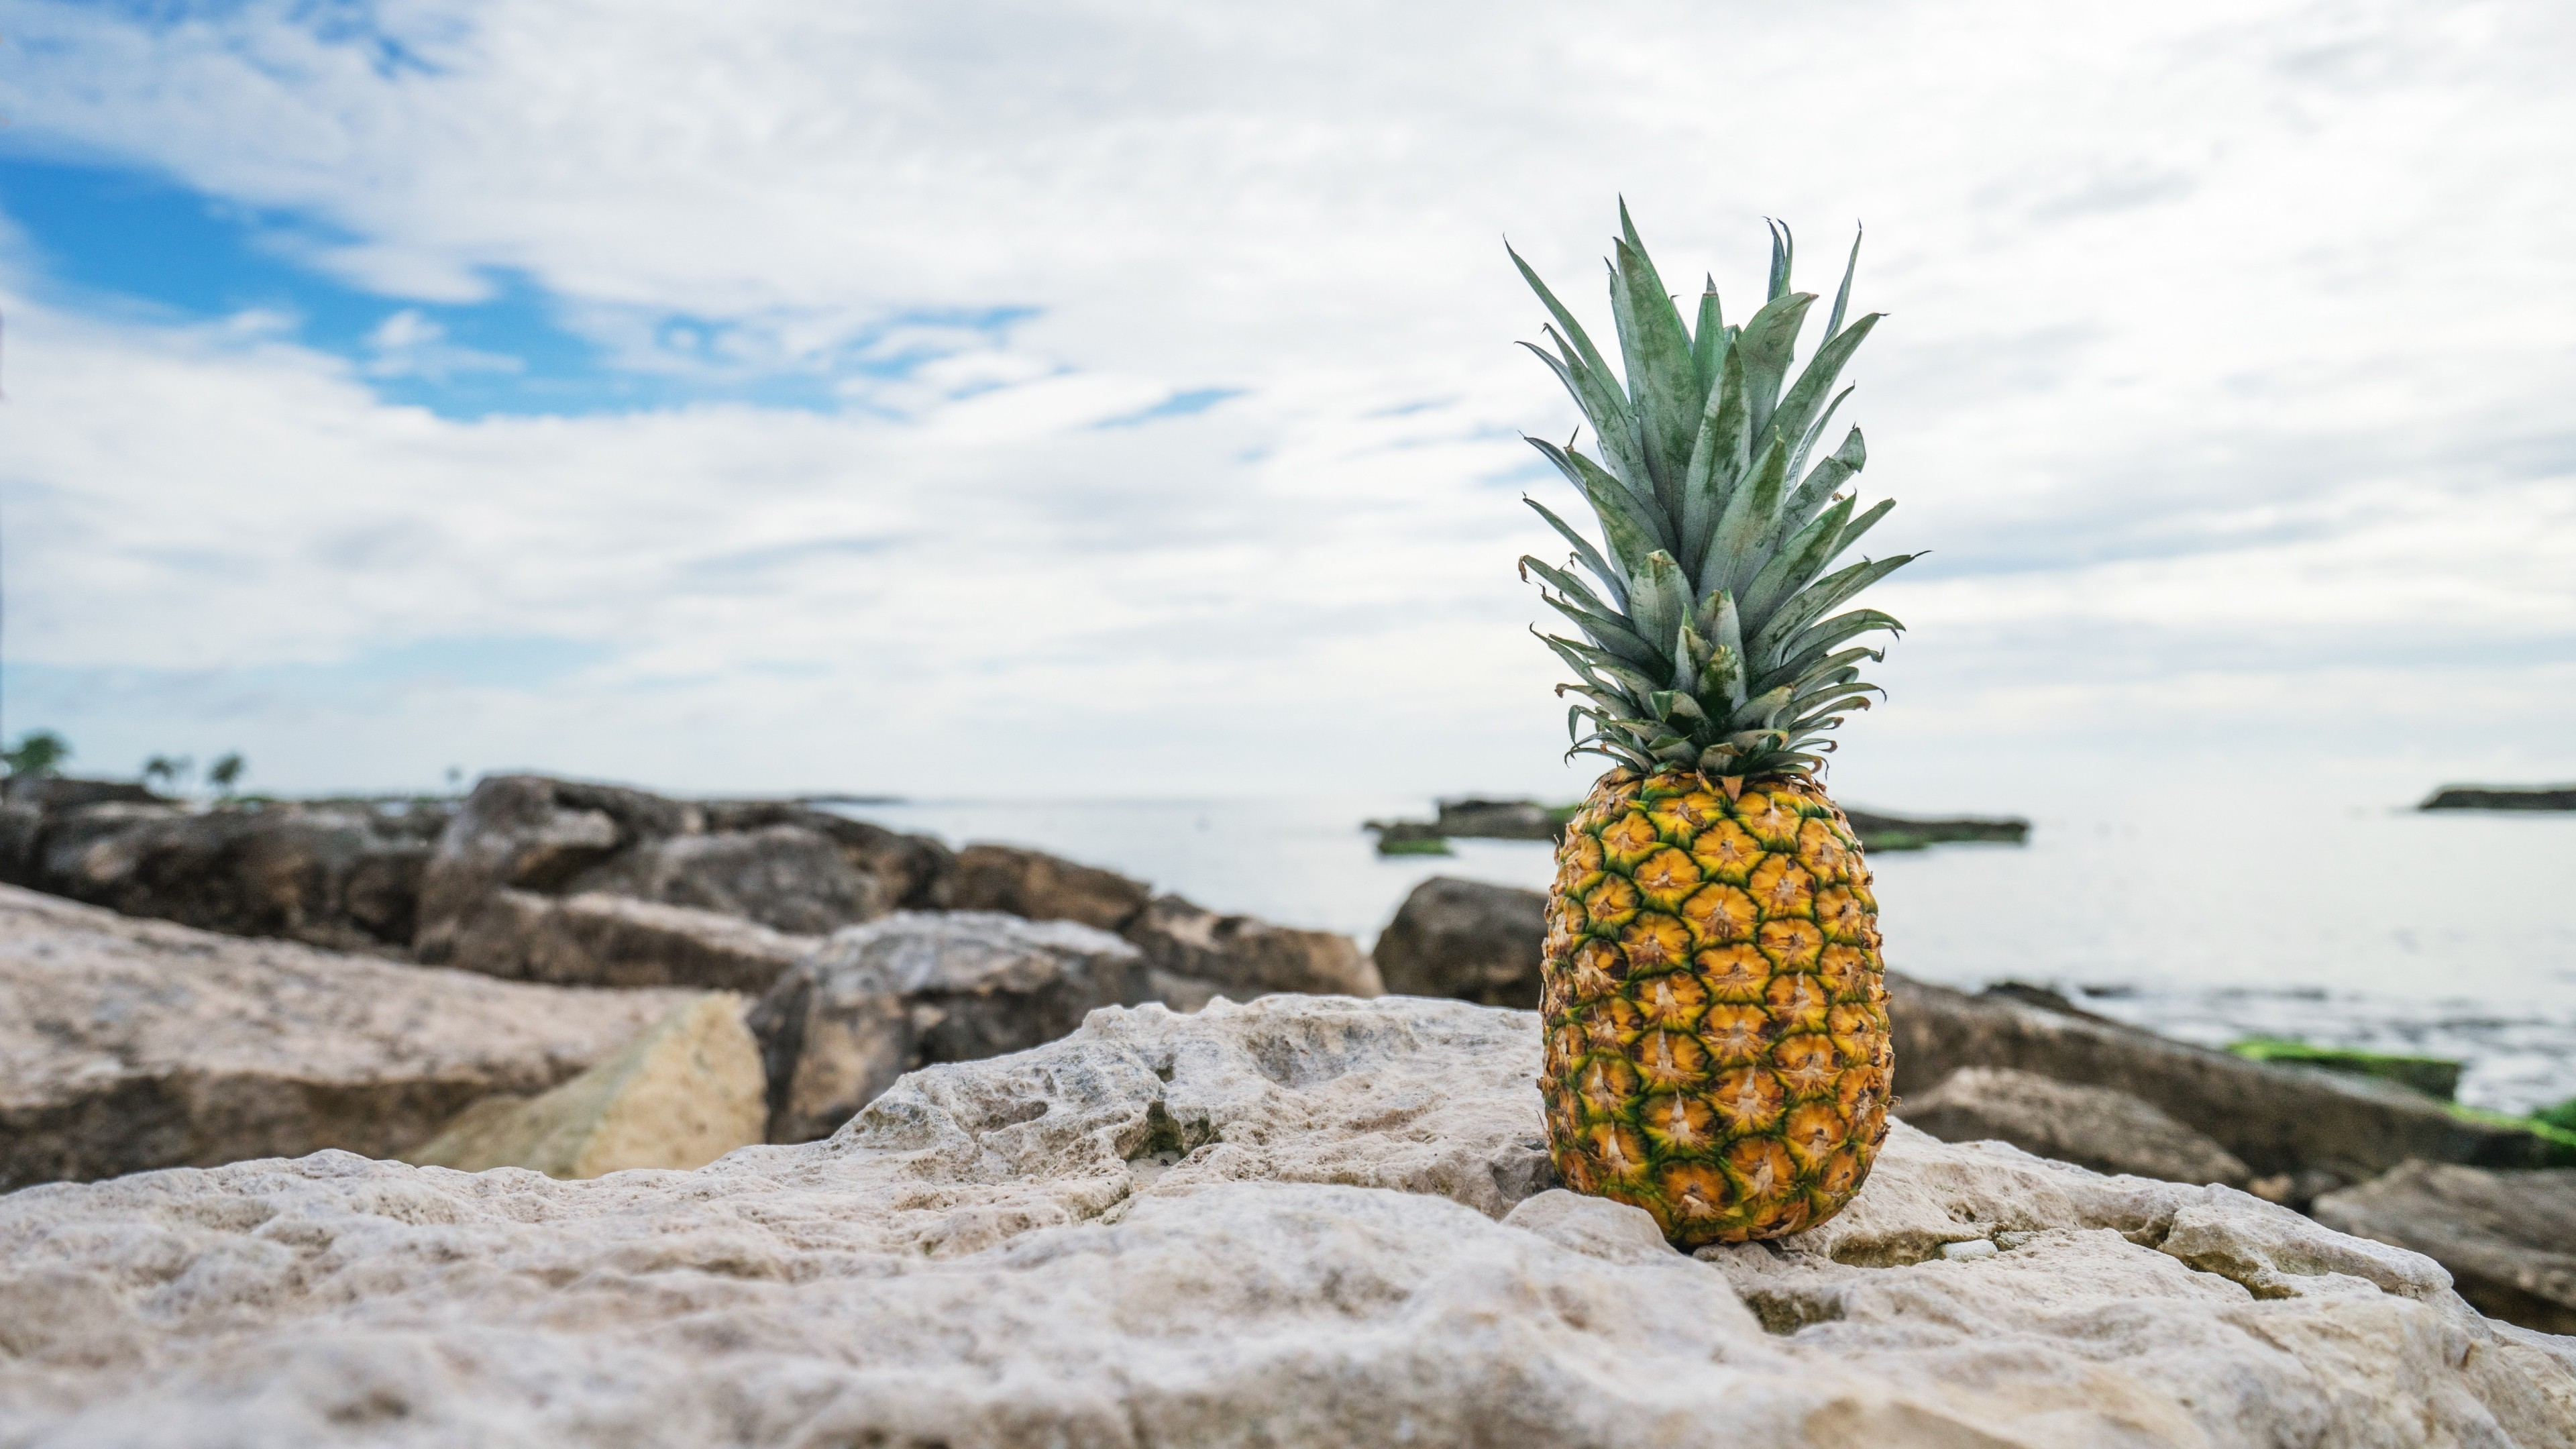 Pineapple At The Beach: Wallpaper Pineapple, Fruit, Stones, Beach, 4k, Food #15925